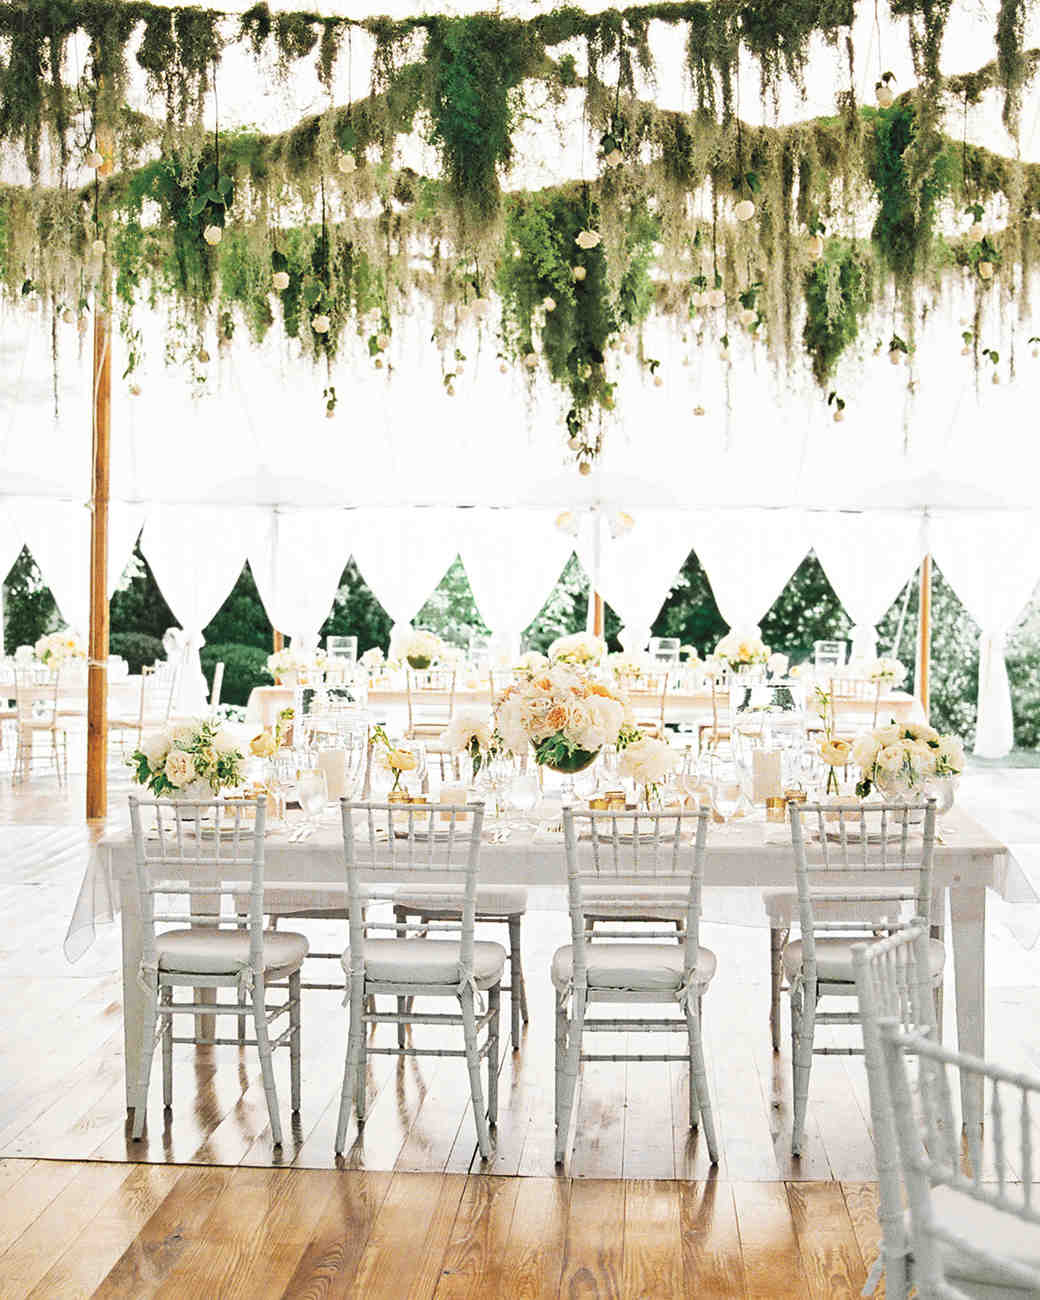 Outdoor Wedding Reception Ideas: 33 Tent Decorating Ideas To Upgrade Your Wedding Reception